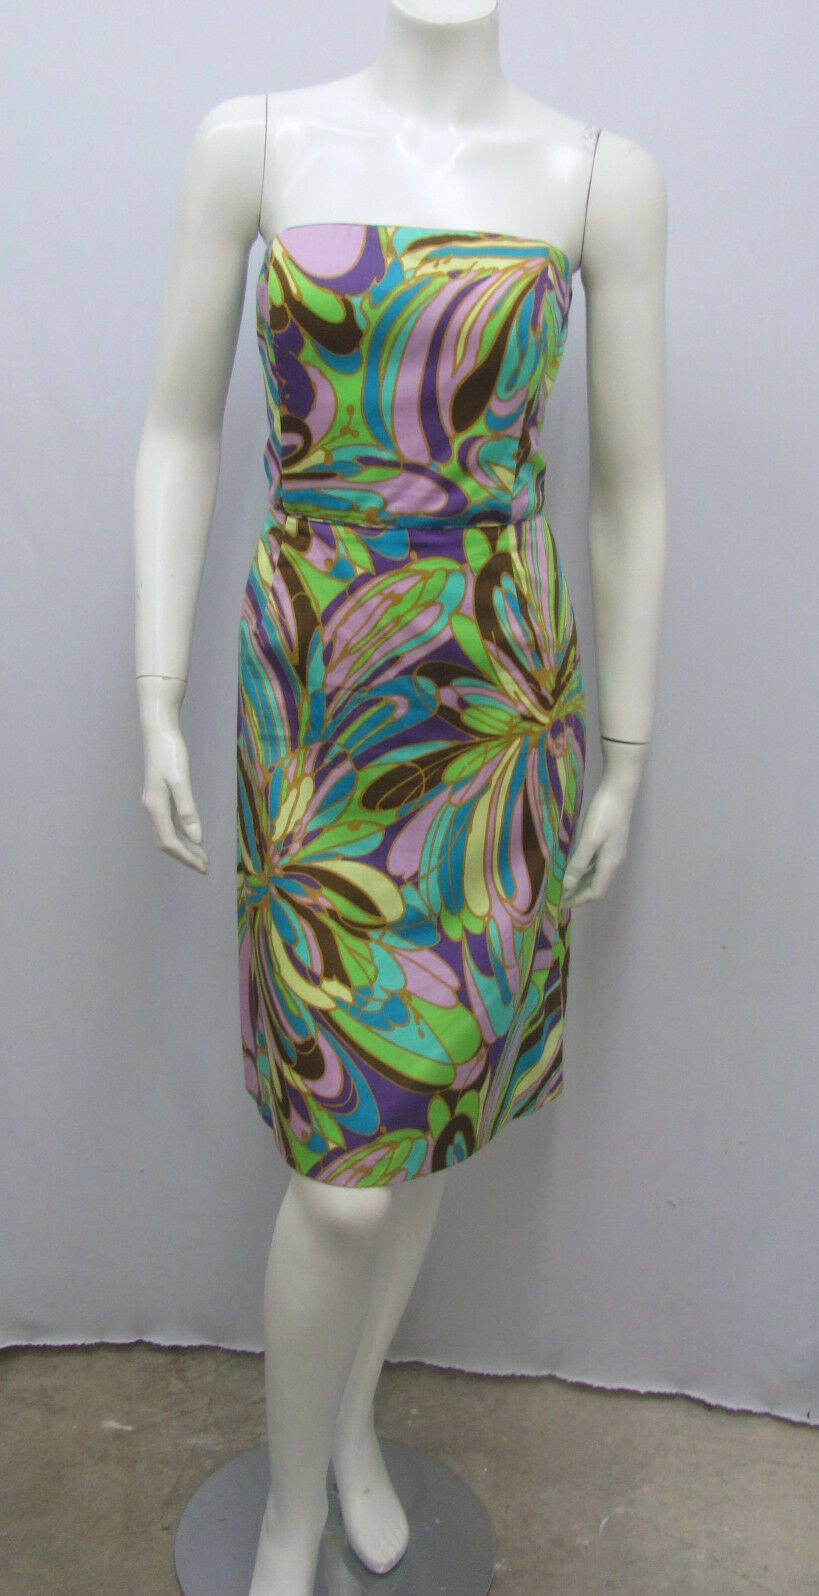 MILLY DRESS STRAPLESS ABSTRACT MOD FLORAL PRINT MULTI COLOR 100% COTTON SIZE 8